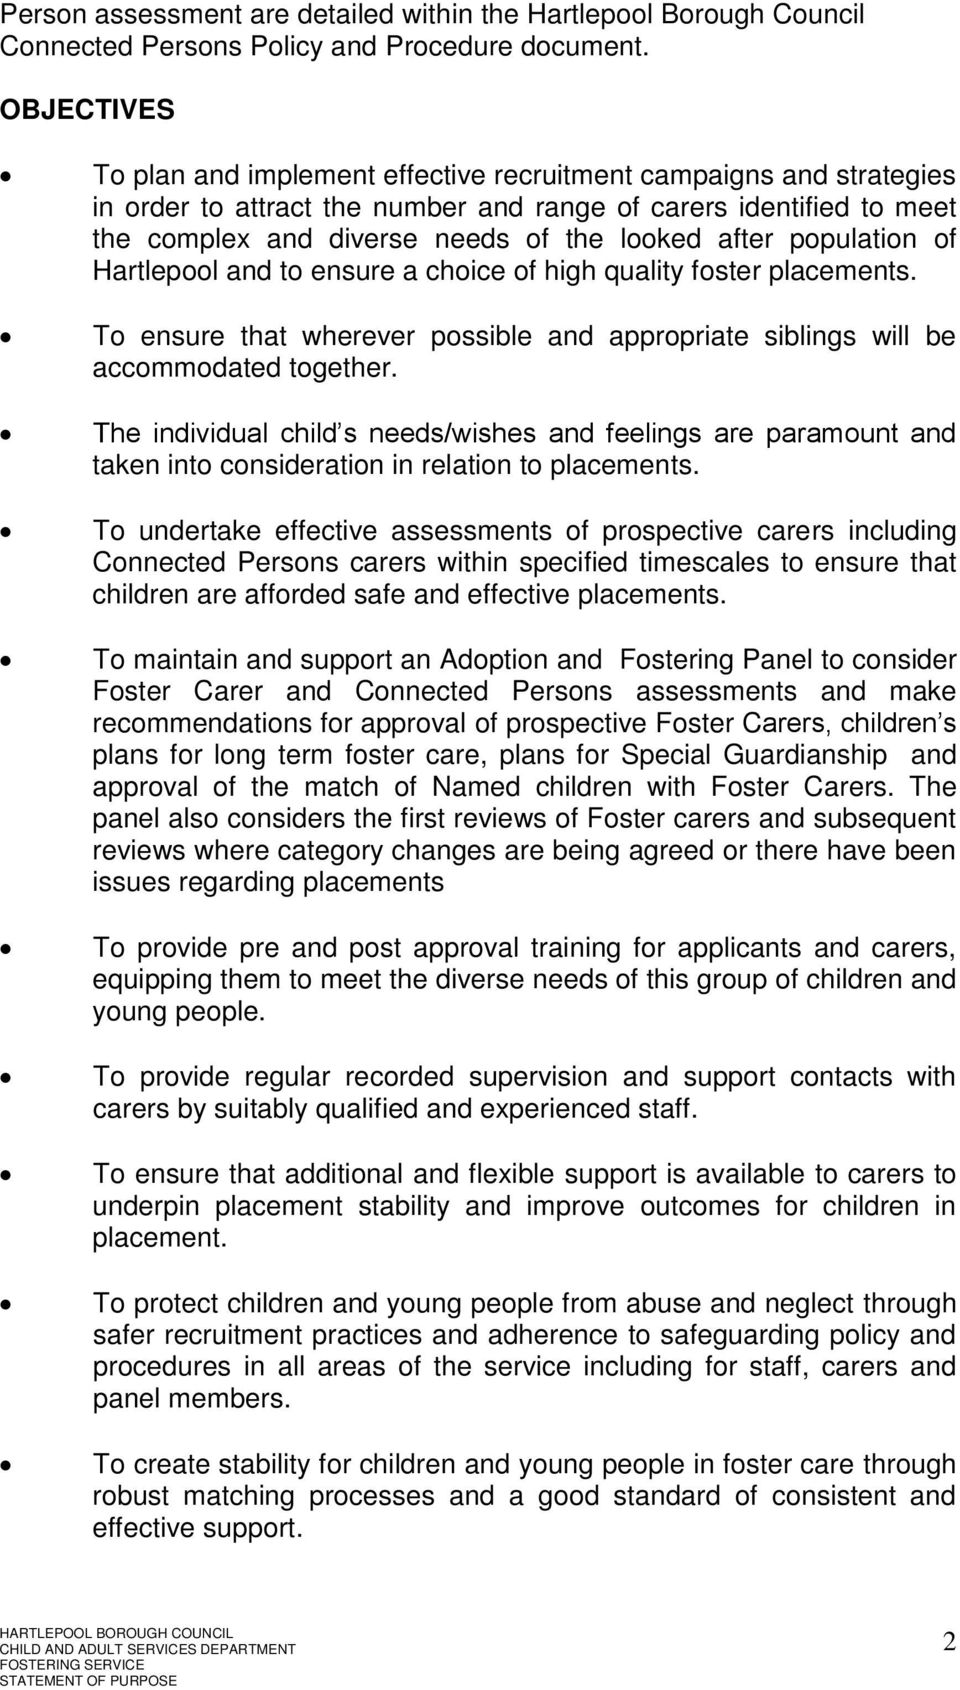 population of Hartlepool and to ensure a choice of high quality foster placements. To ensure that wherever possible and appropriate siblings will be accommodated together.